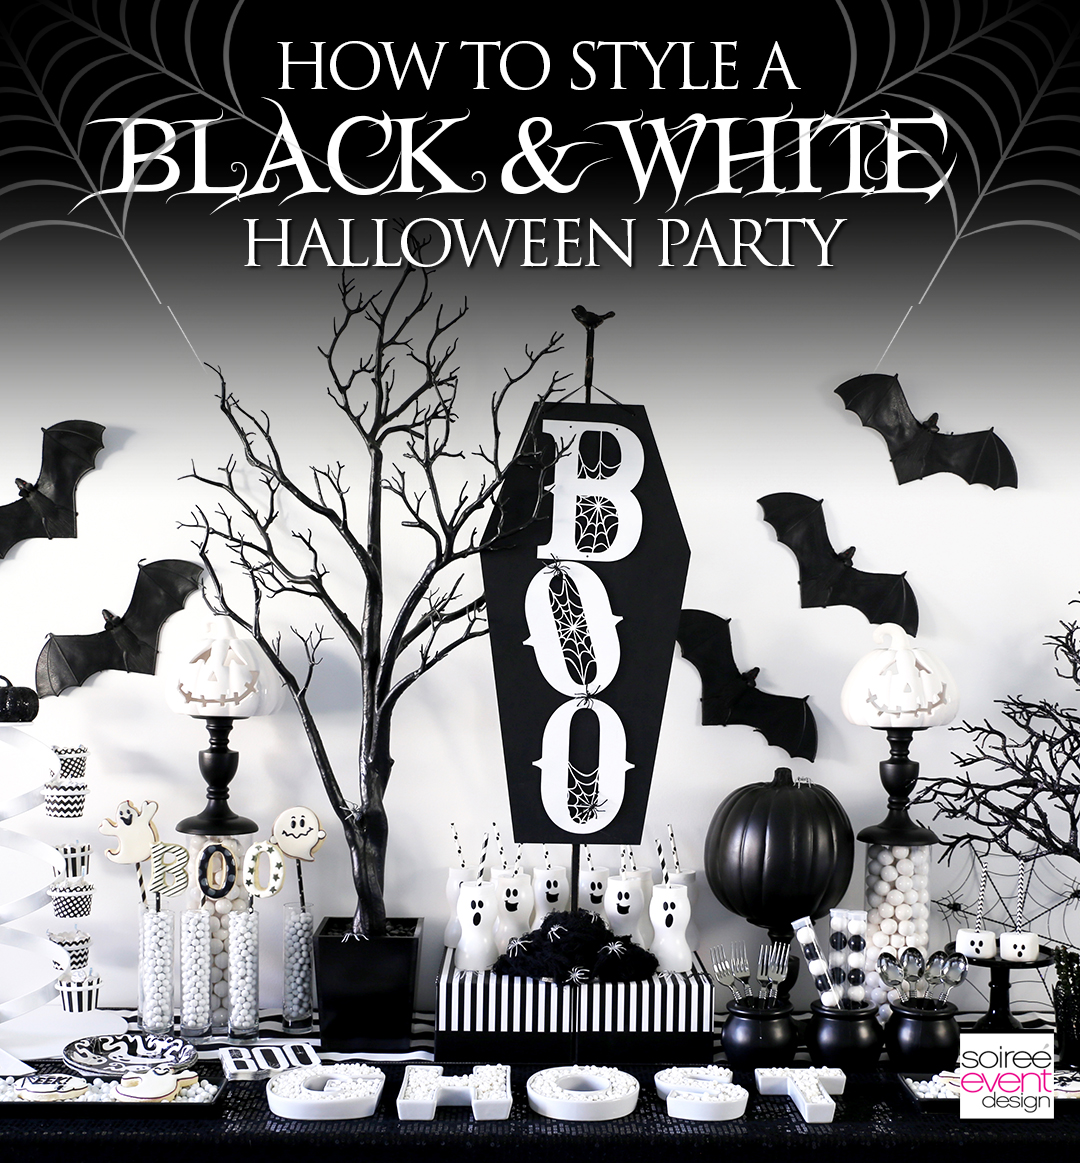 BOO Black and White Halloween Party - Soiree Event Design